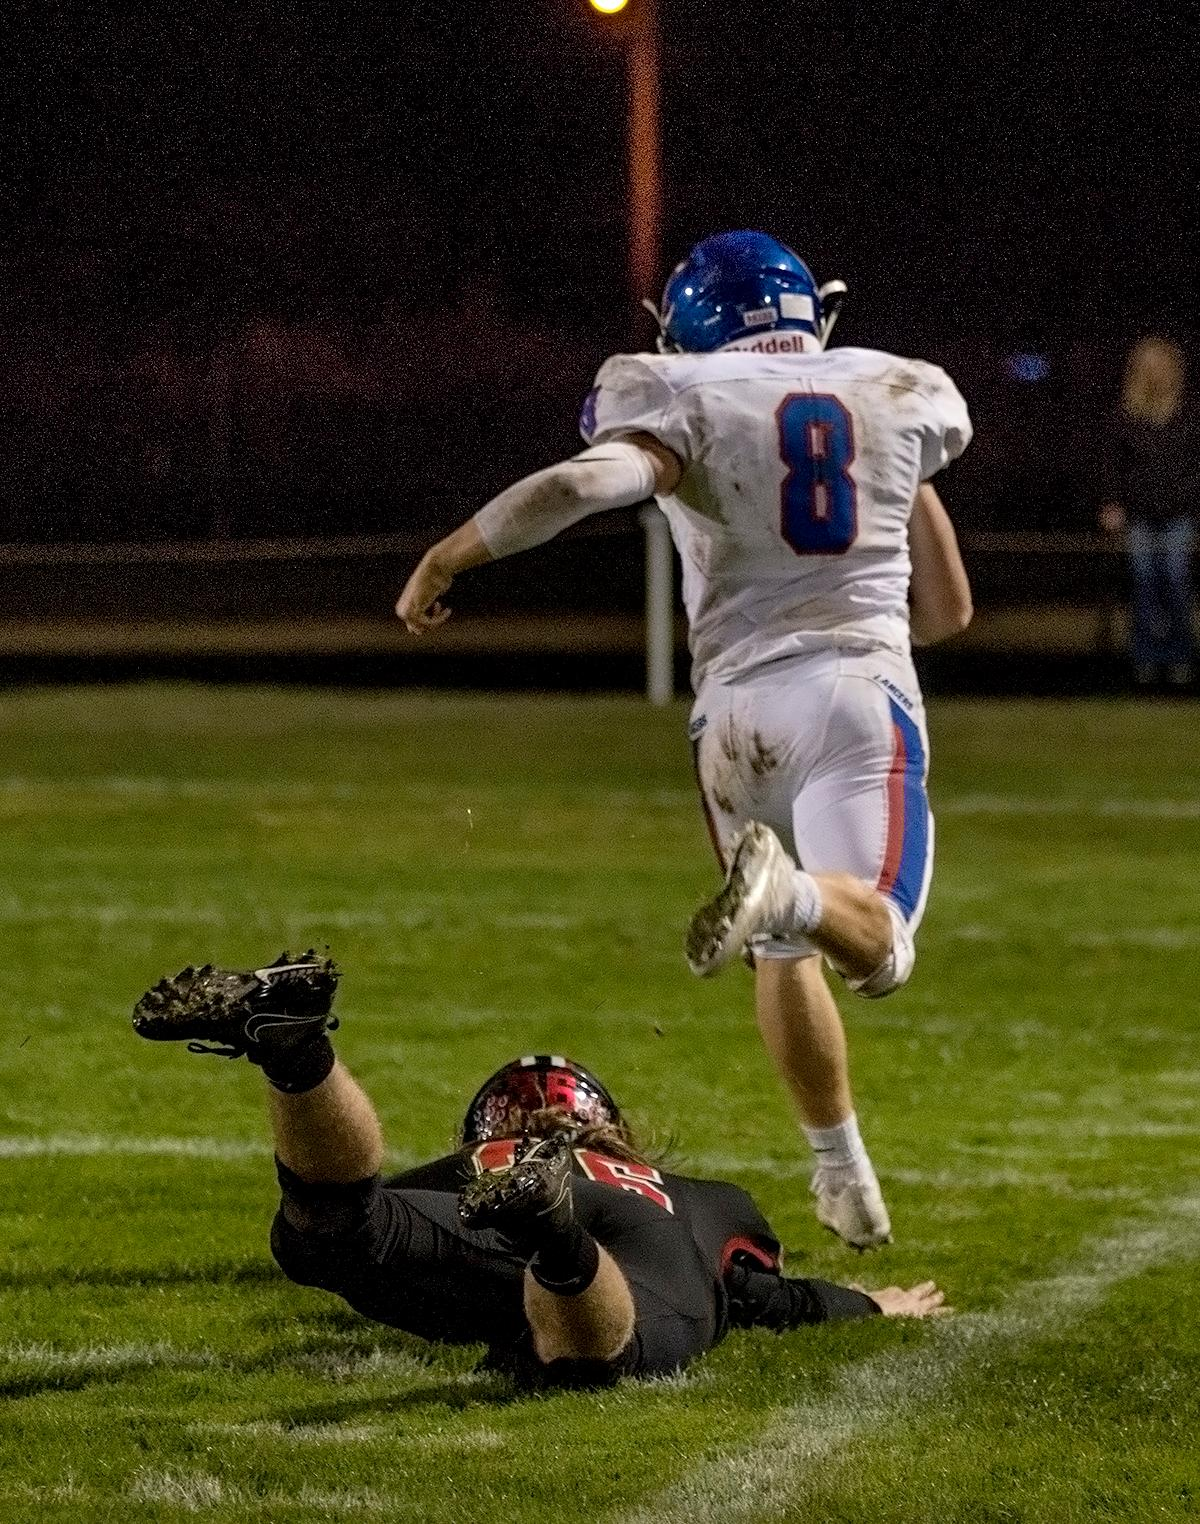 Thurston Colts linebacker Wes Kommer (#36) attempts to tackle Churchill Lancers running back Dalton McDaniel (#8).                                    The Churchill Lancers defeated the Thurston Colts 40–35 at Thurston high school on Friday night, September 29th. Photo by Abigail Winn, Oregon News Lab